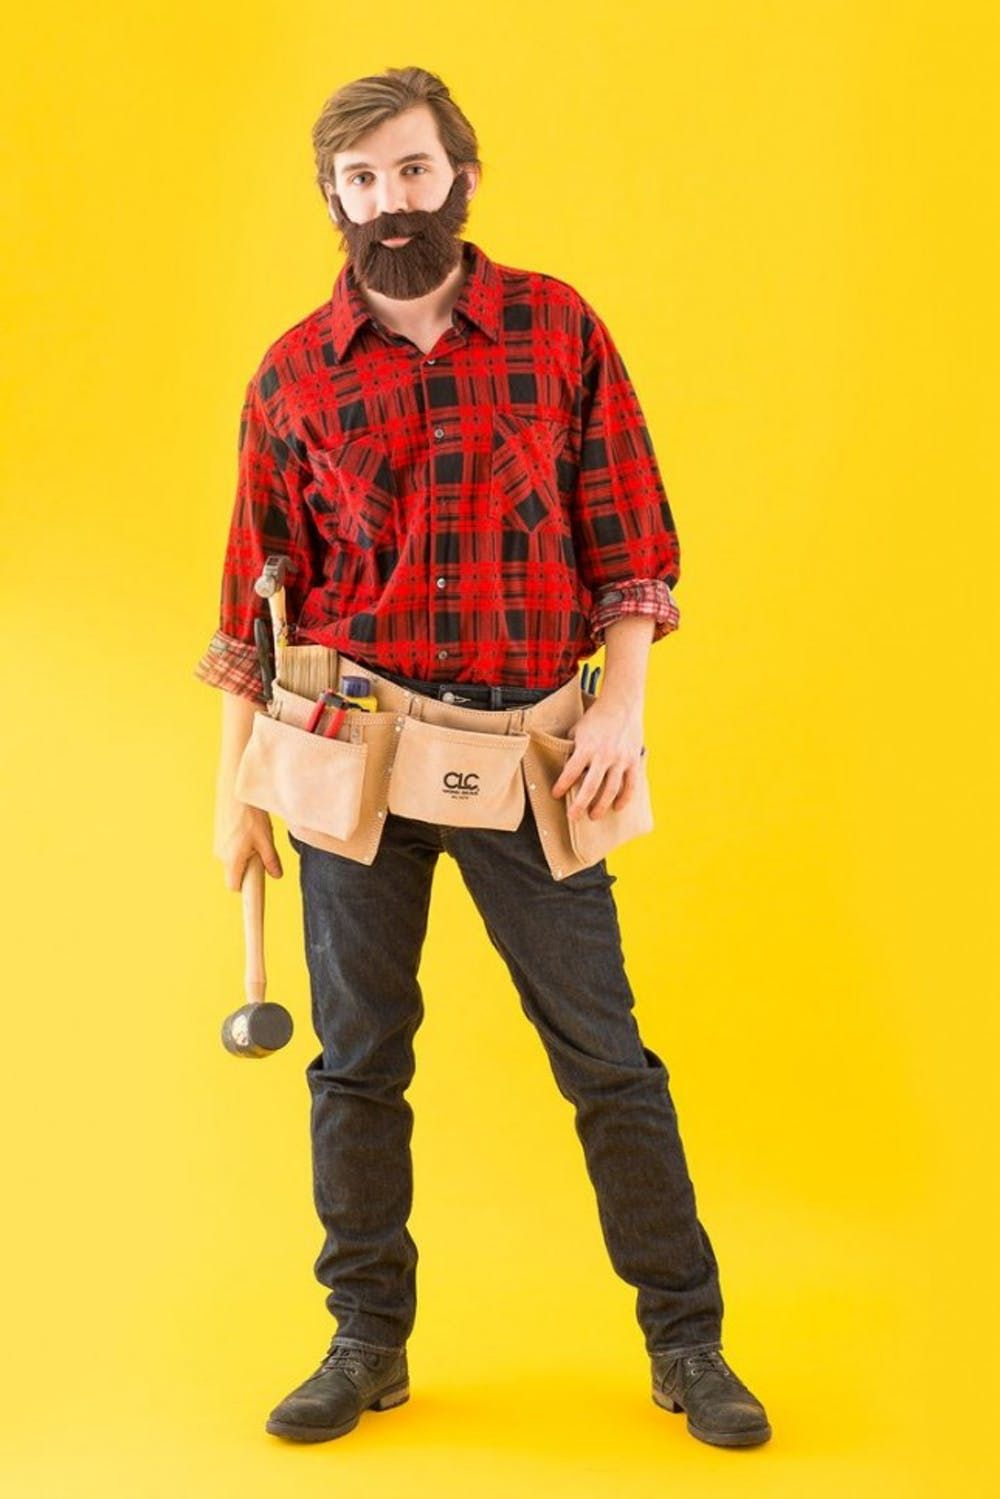 41 Awesome DIY Halloween Costume Ideas for Guys Easy